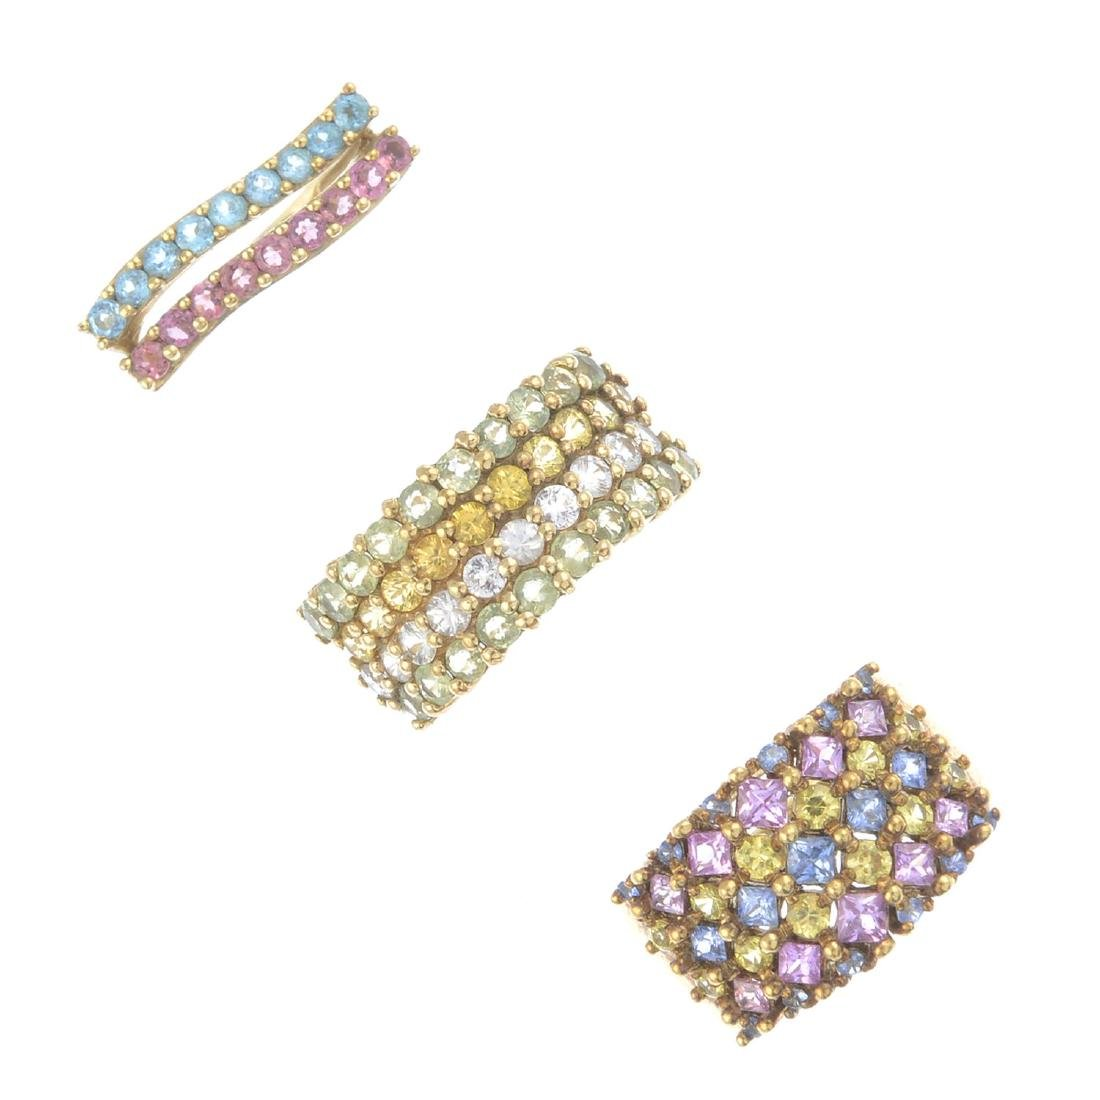 Three 9ct gold gem-set dress rings. To include a